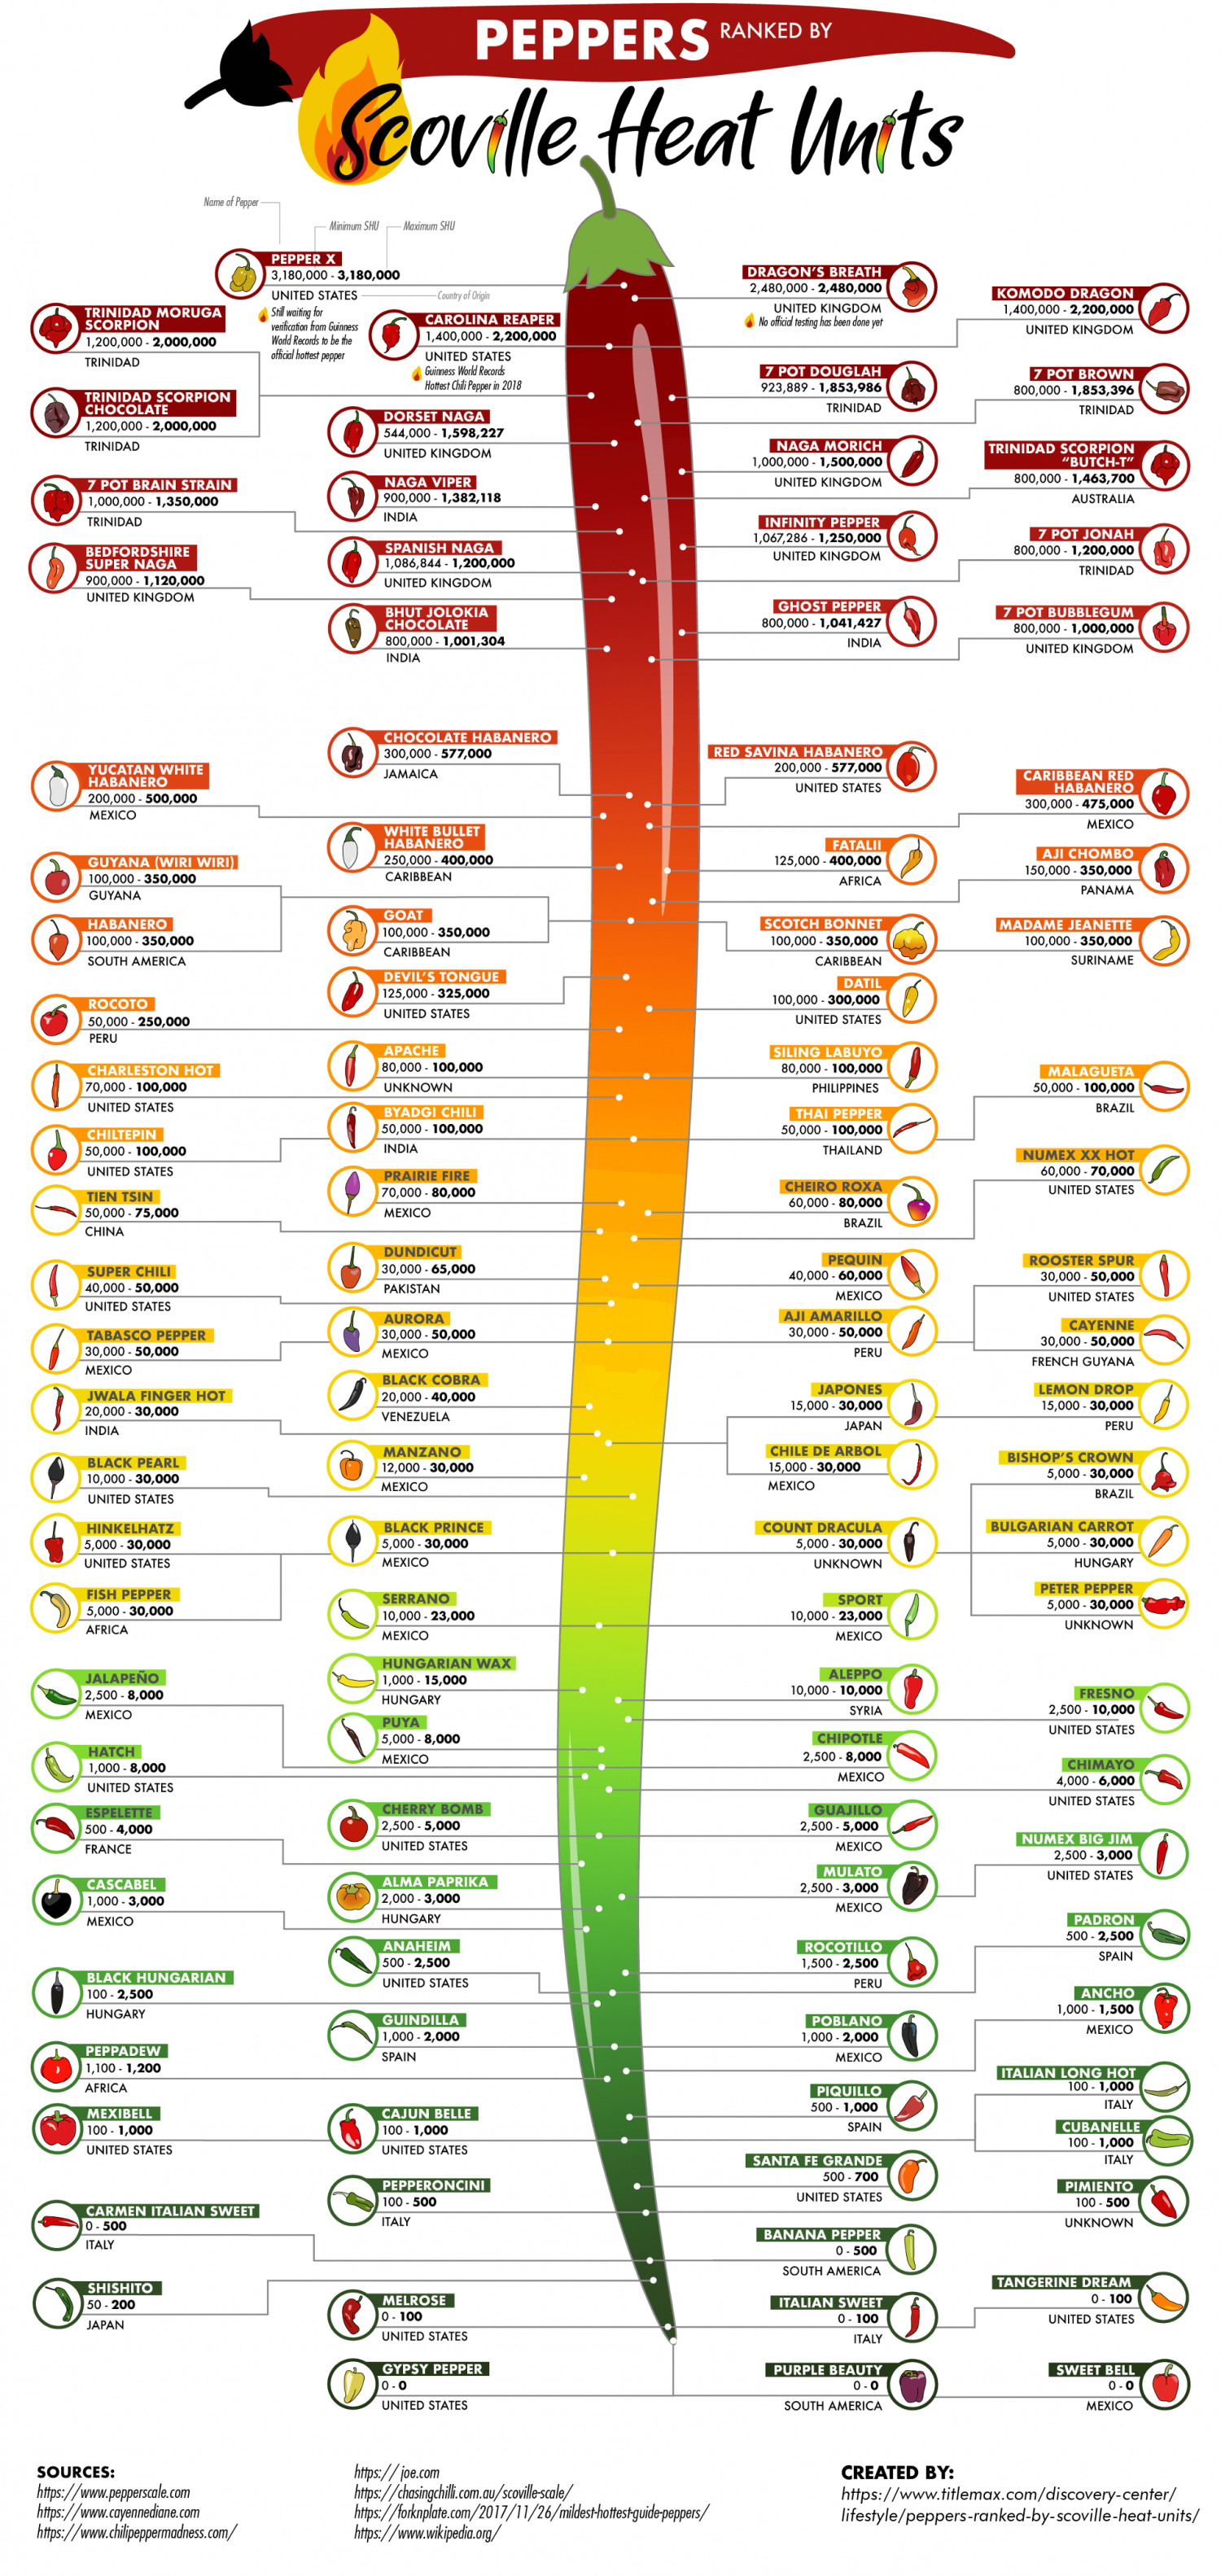 Peppers Ranked by Scoville Heat Units  Infographic